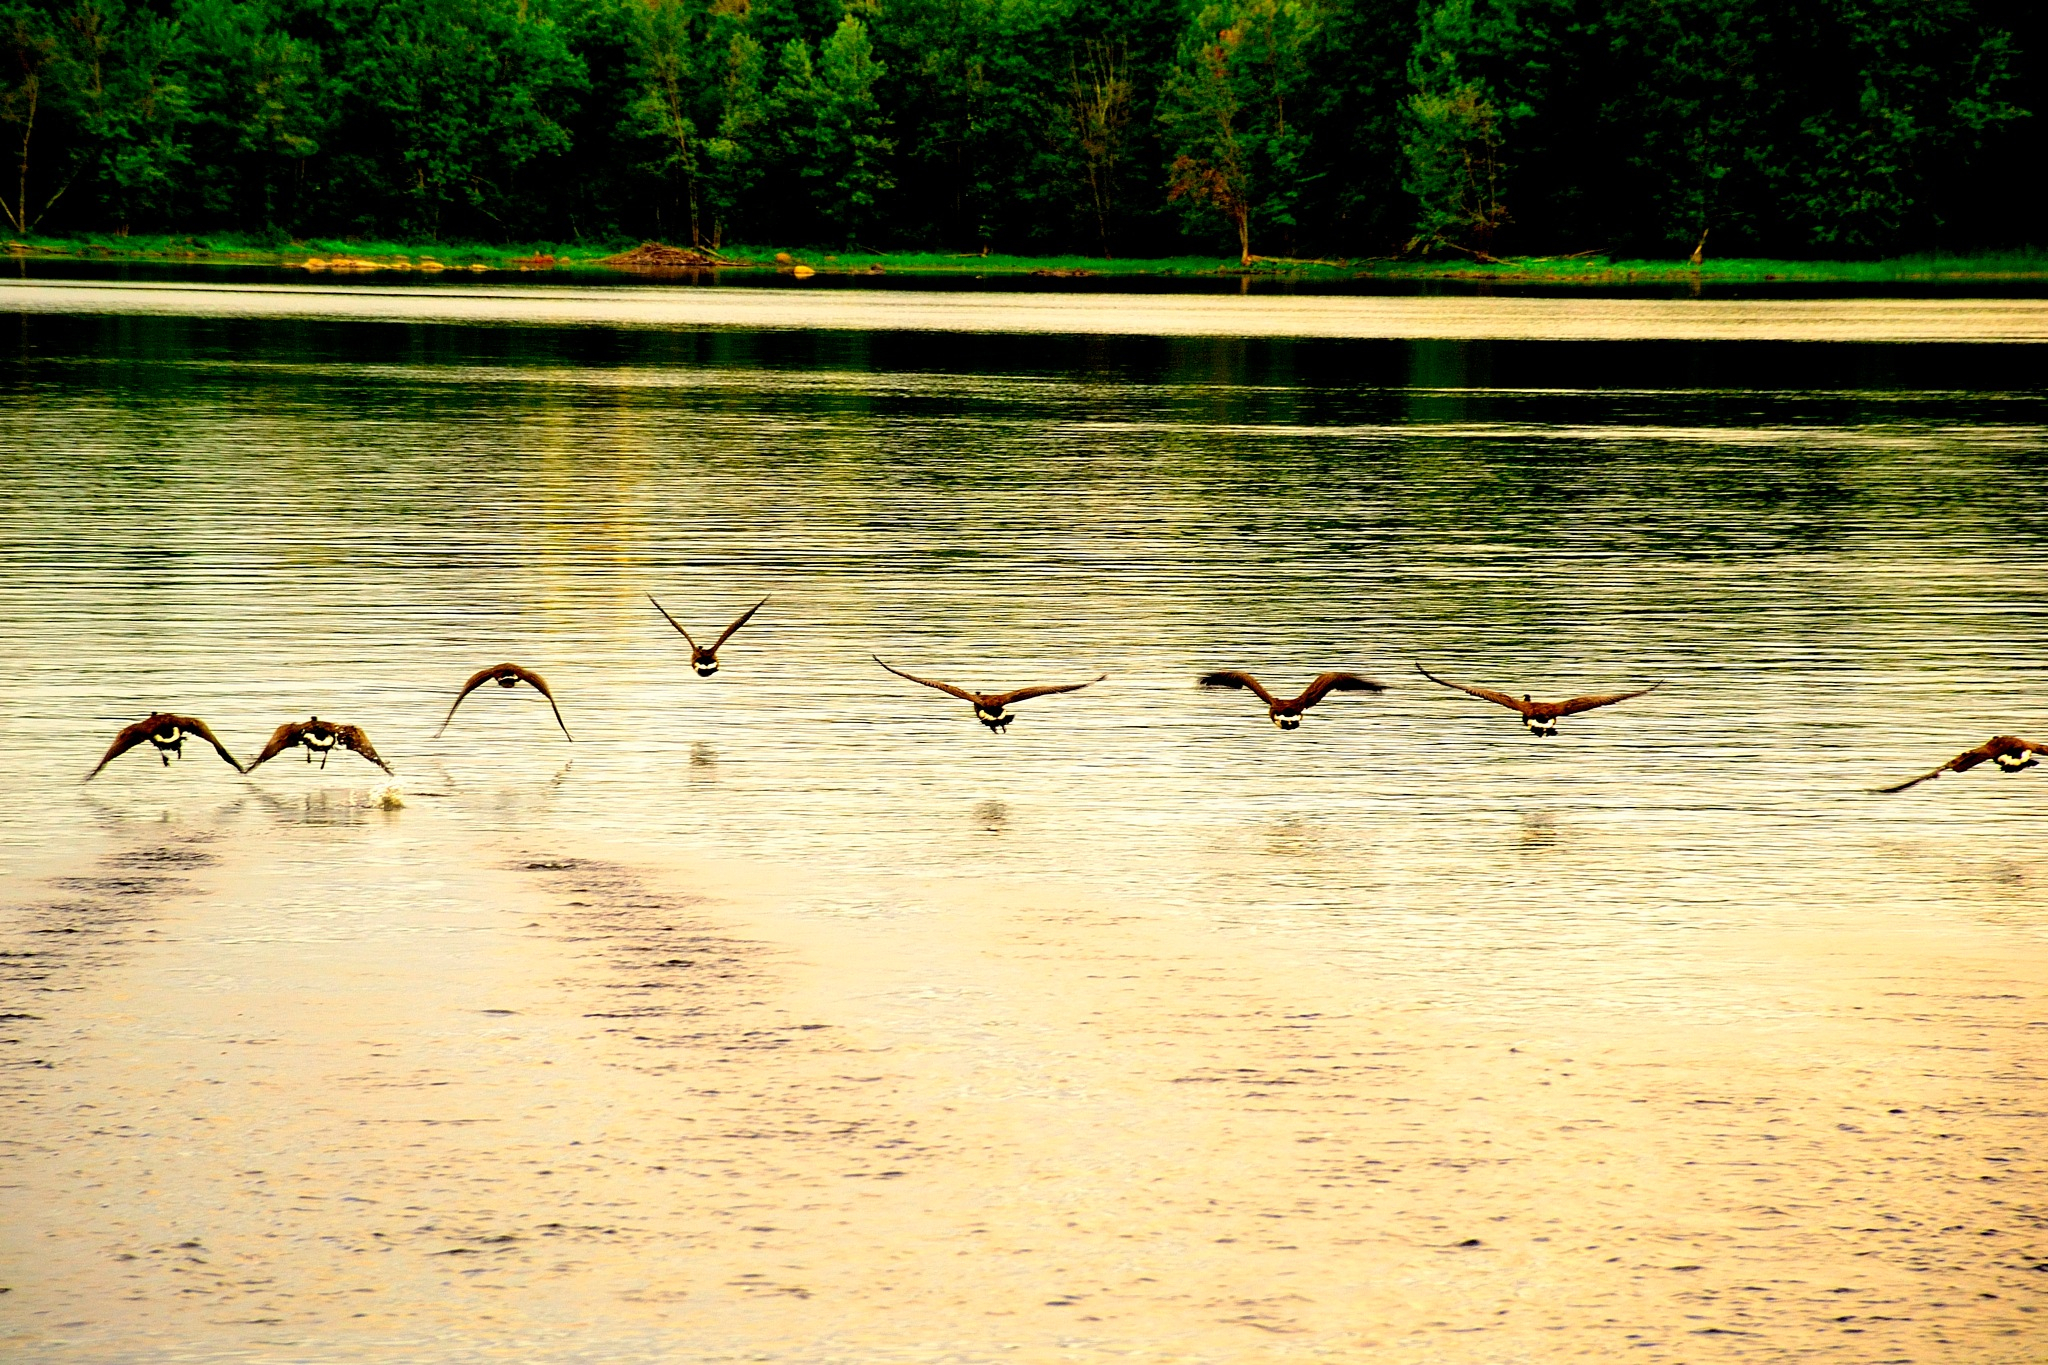 Flying Low by tamasergy